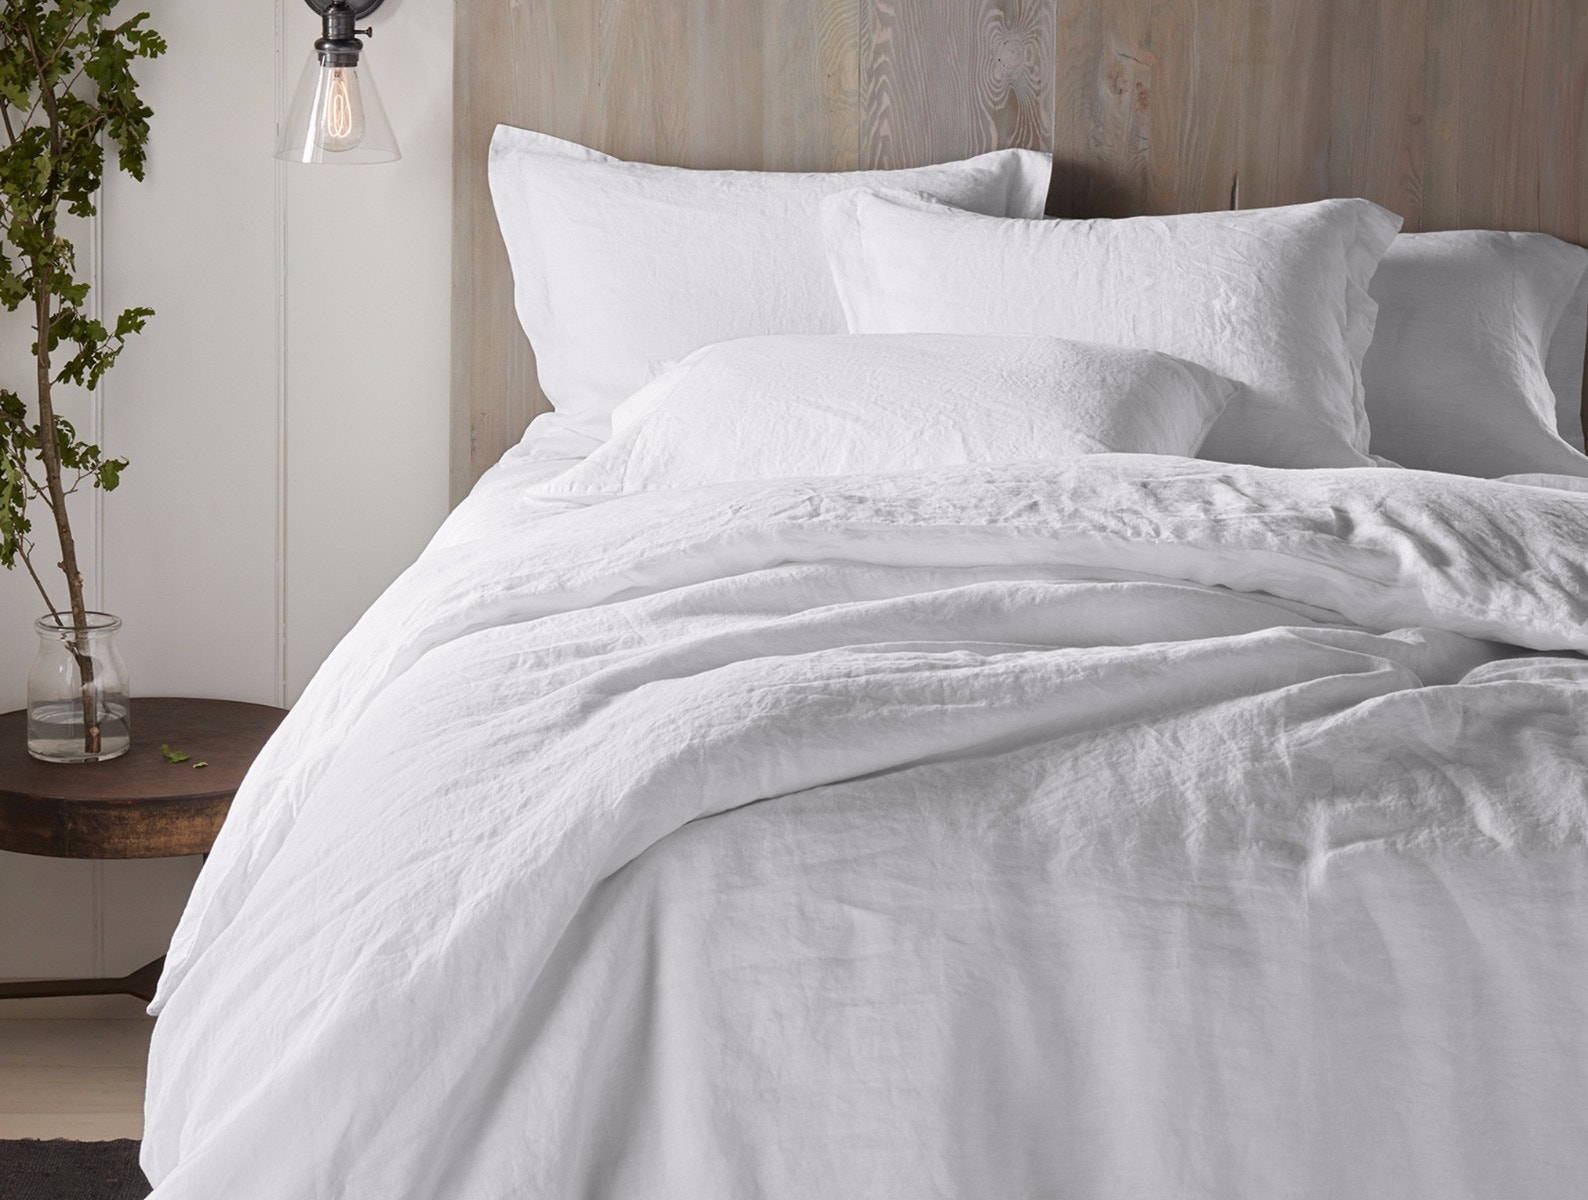 Organic Relaxed Linen Duvet Cover and Pillow Sham